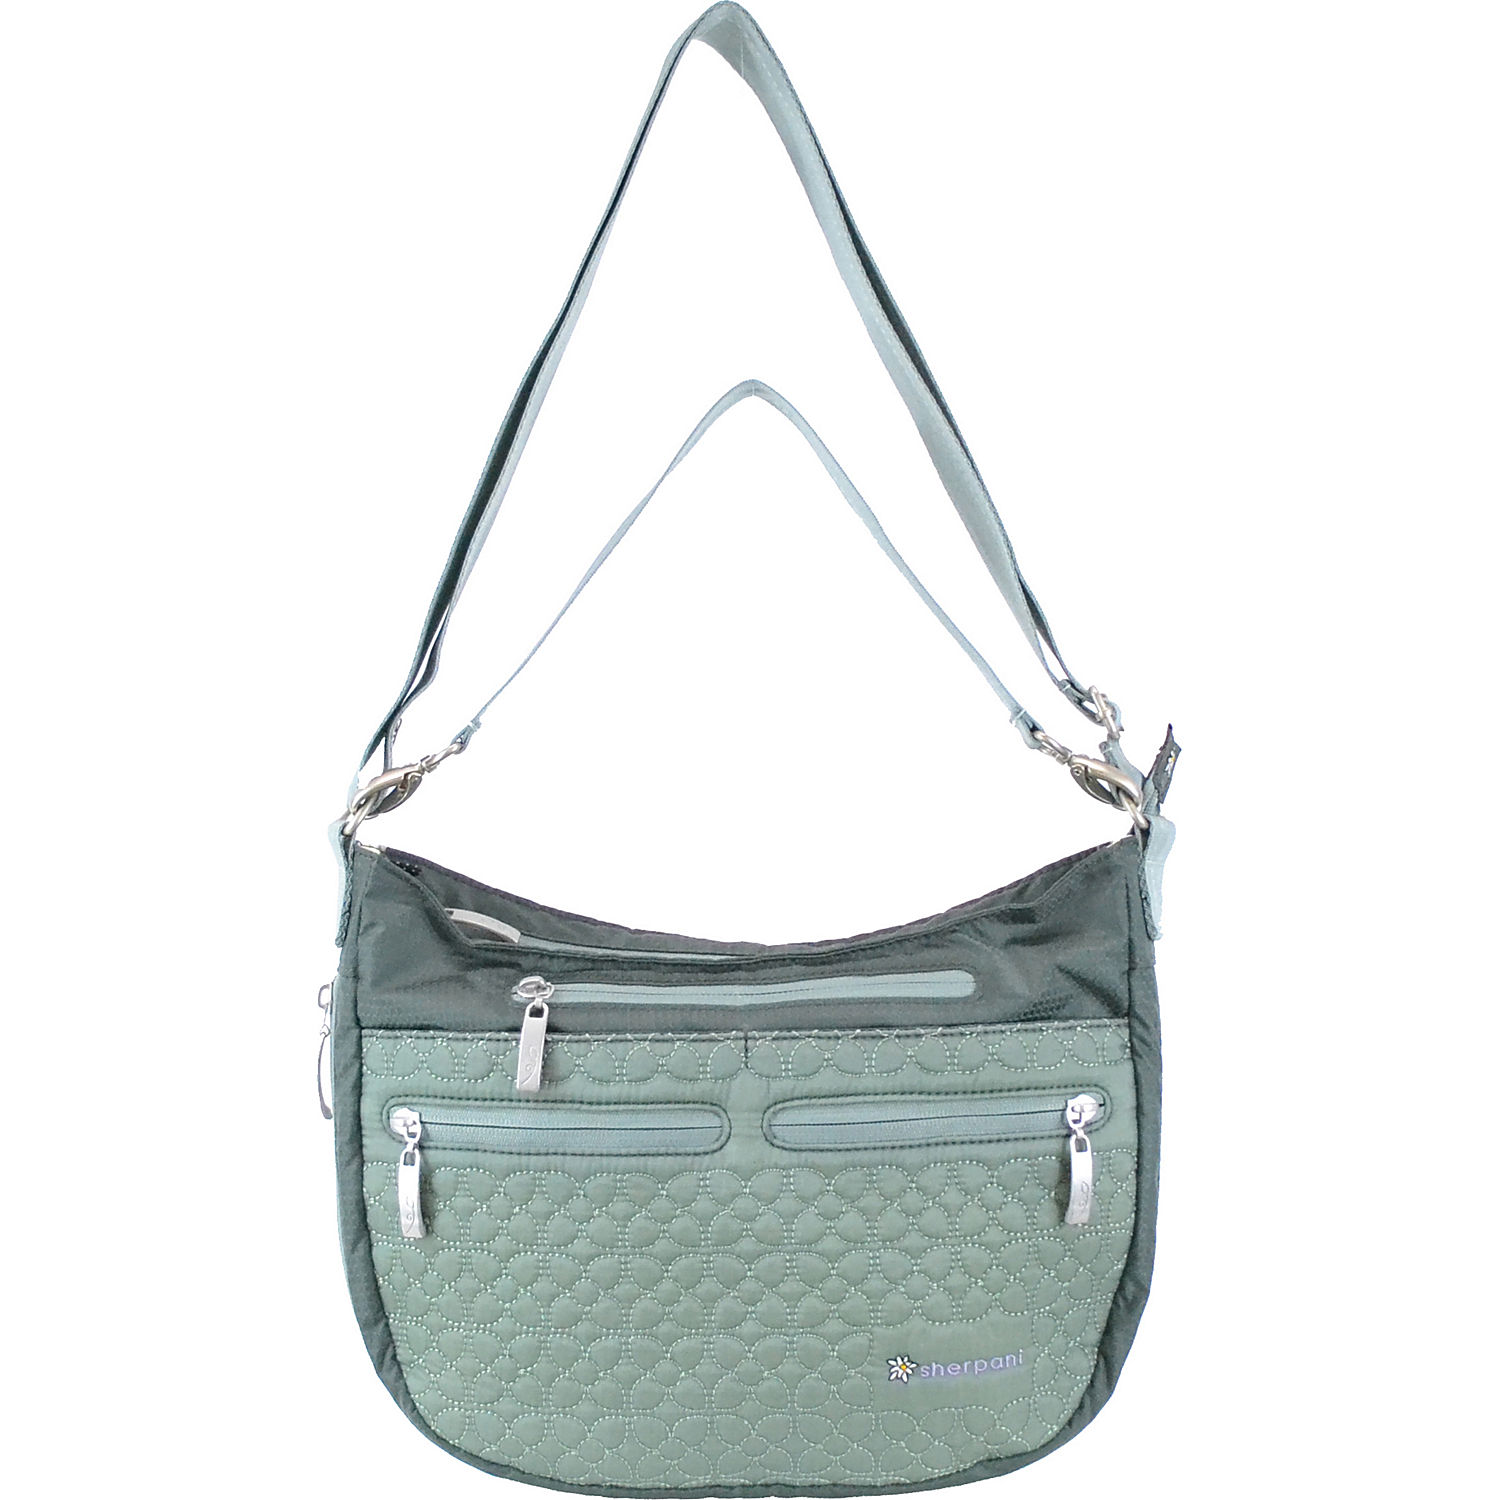 These Sherpani women's handbags and purses are outfitted with an array of features that include adjustable straps, magnetic snaps, and a variety of outer pockets. These handbags can be selected in several different size options that include very small, small, medium, large, and extra large. How do you choose the right Sherpani bag for you?